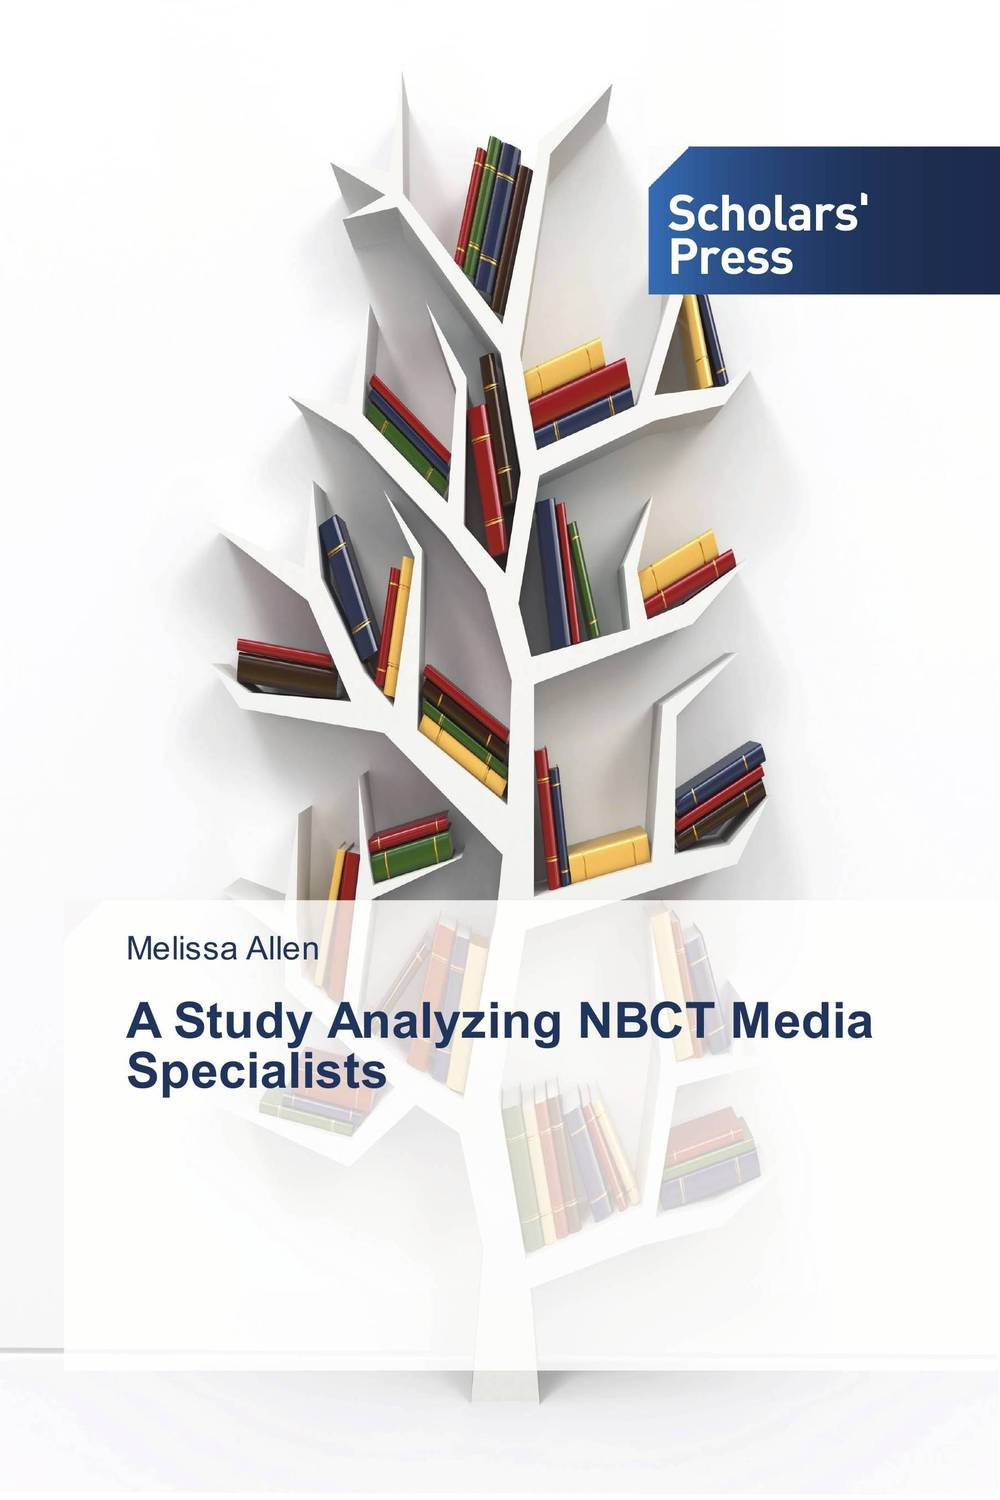 A Study Analyzing NBCT Media Specialists e hutchins culture and inference – a trobriand case study